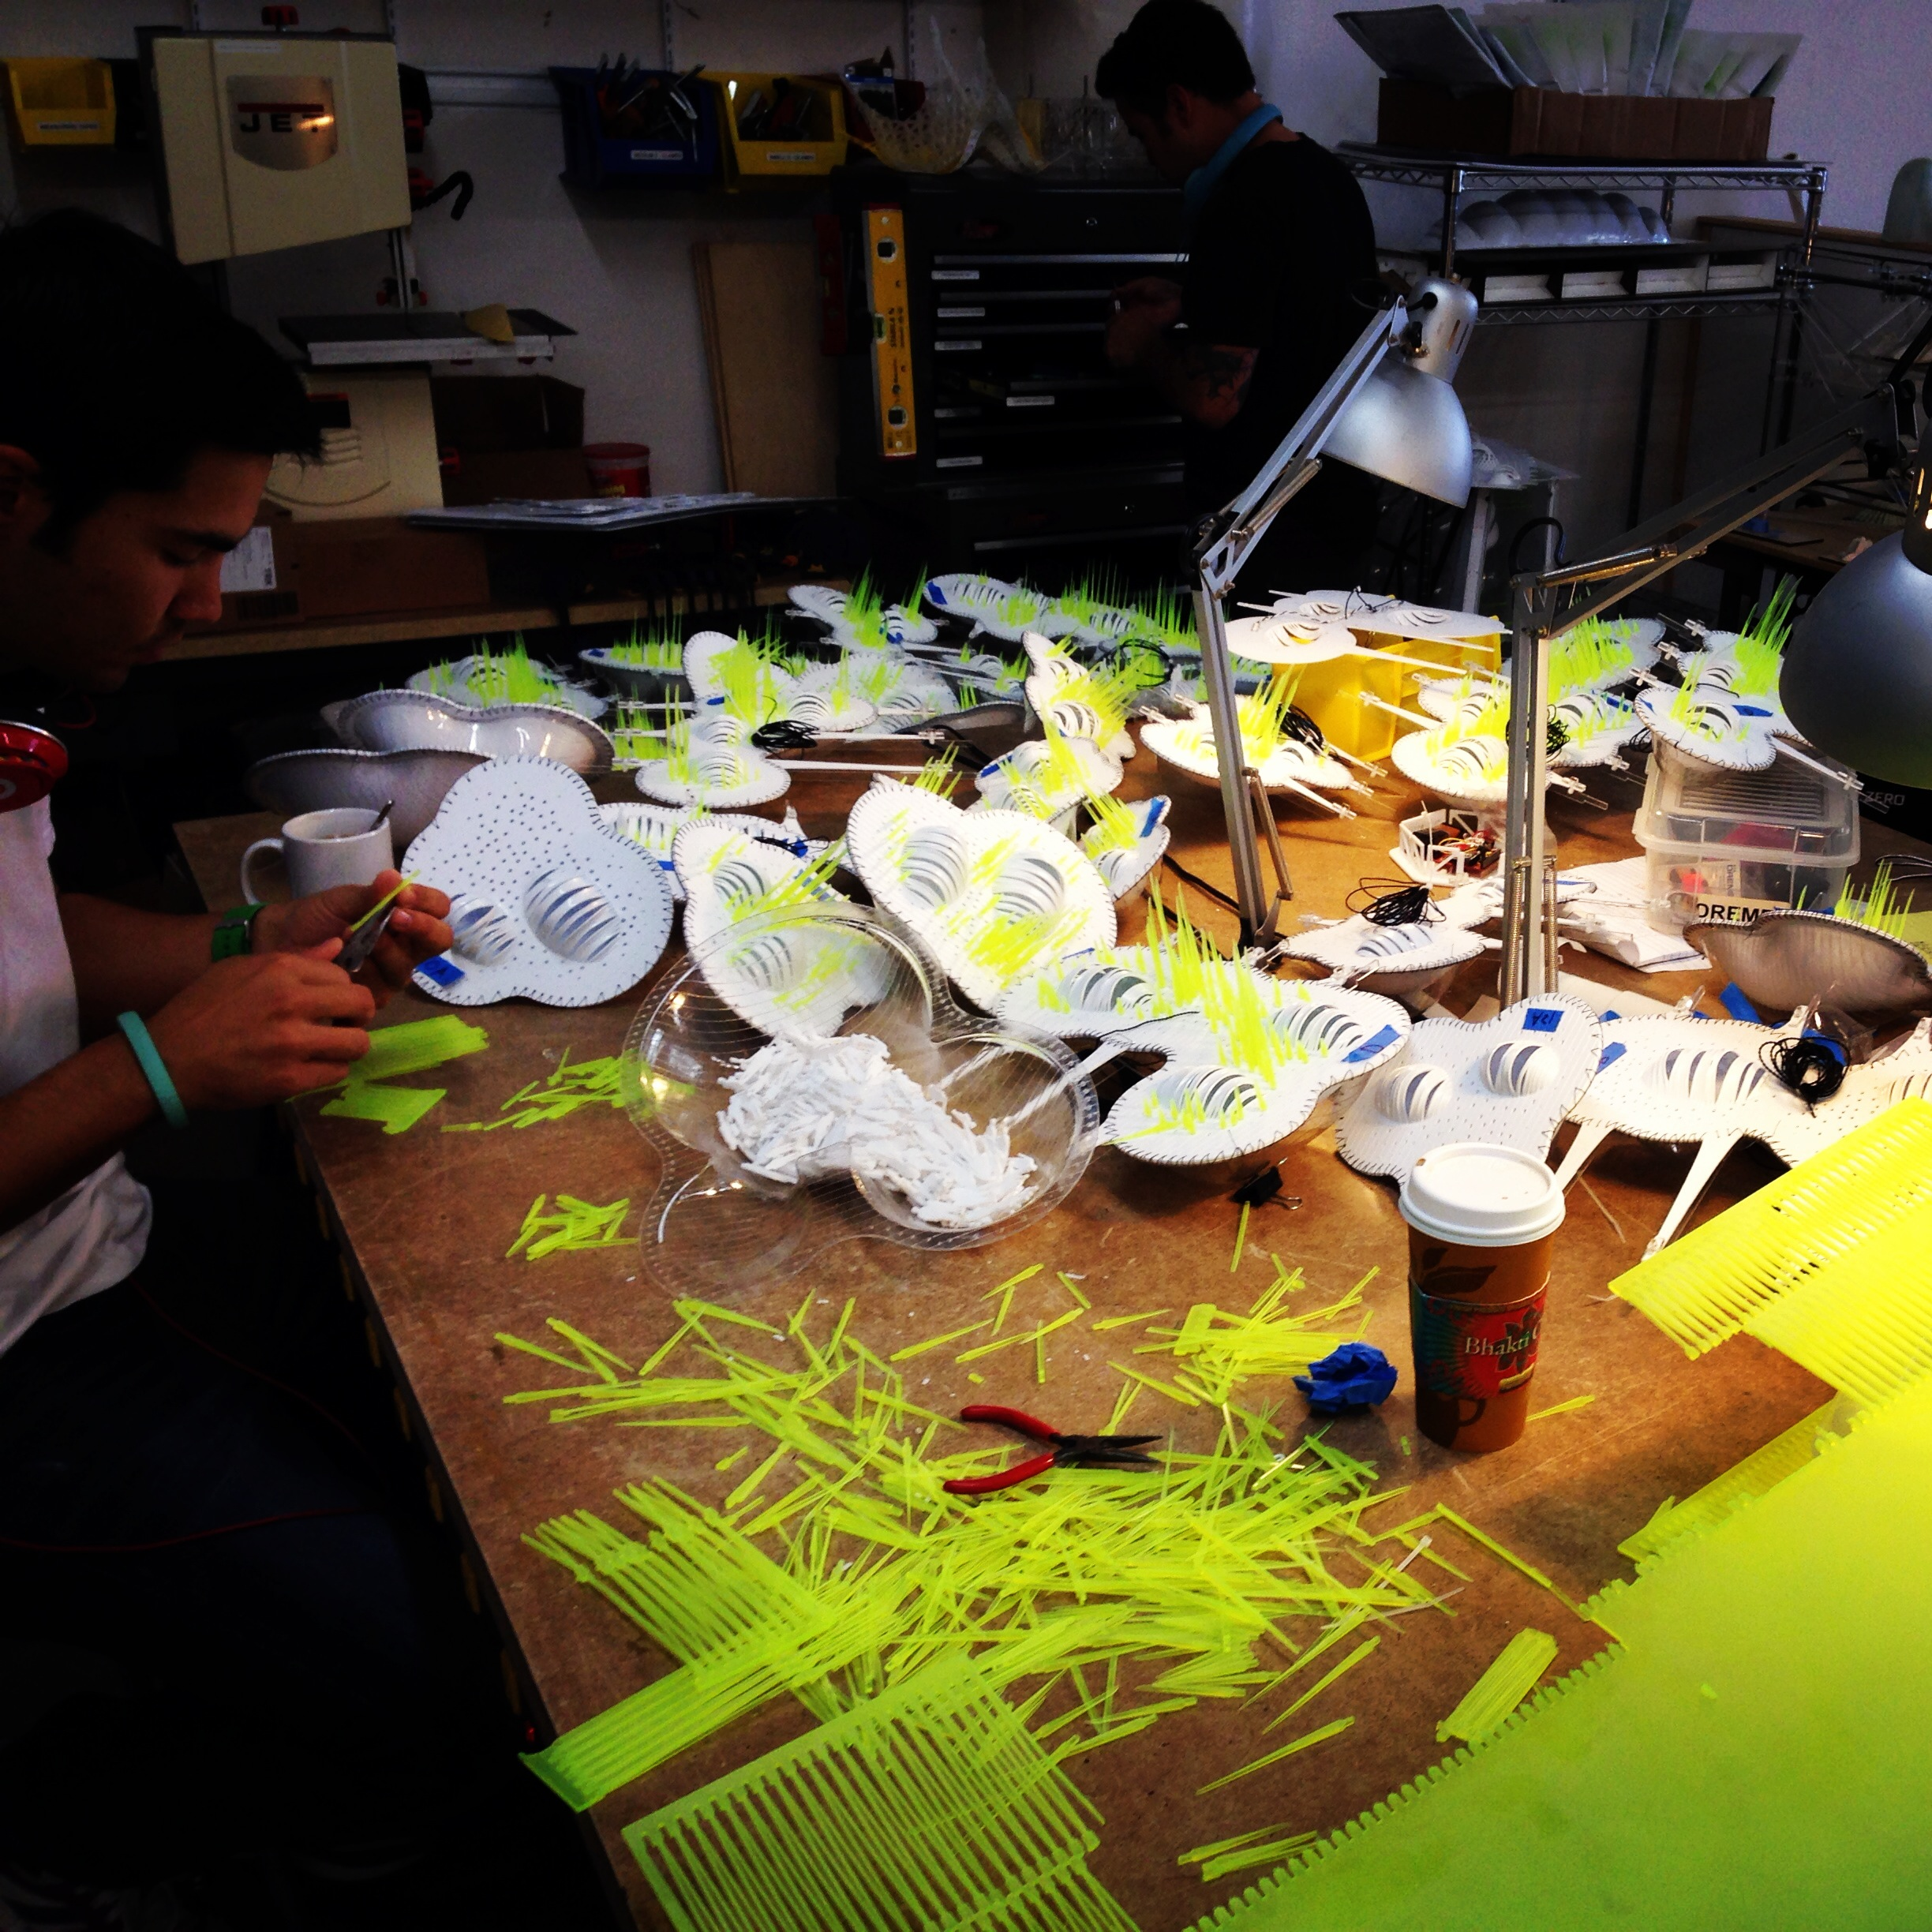 Hydraspan models in process at Future Cities Lab, San Francisco